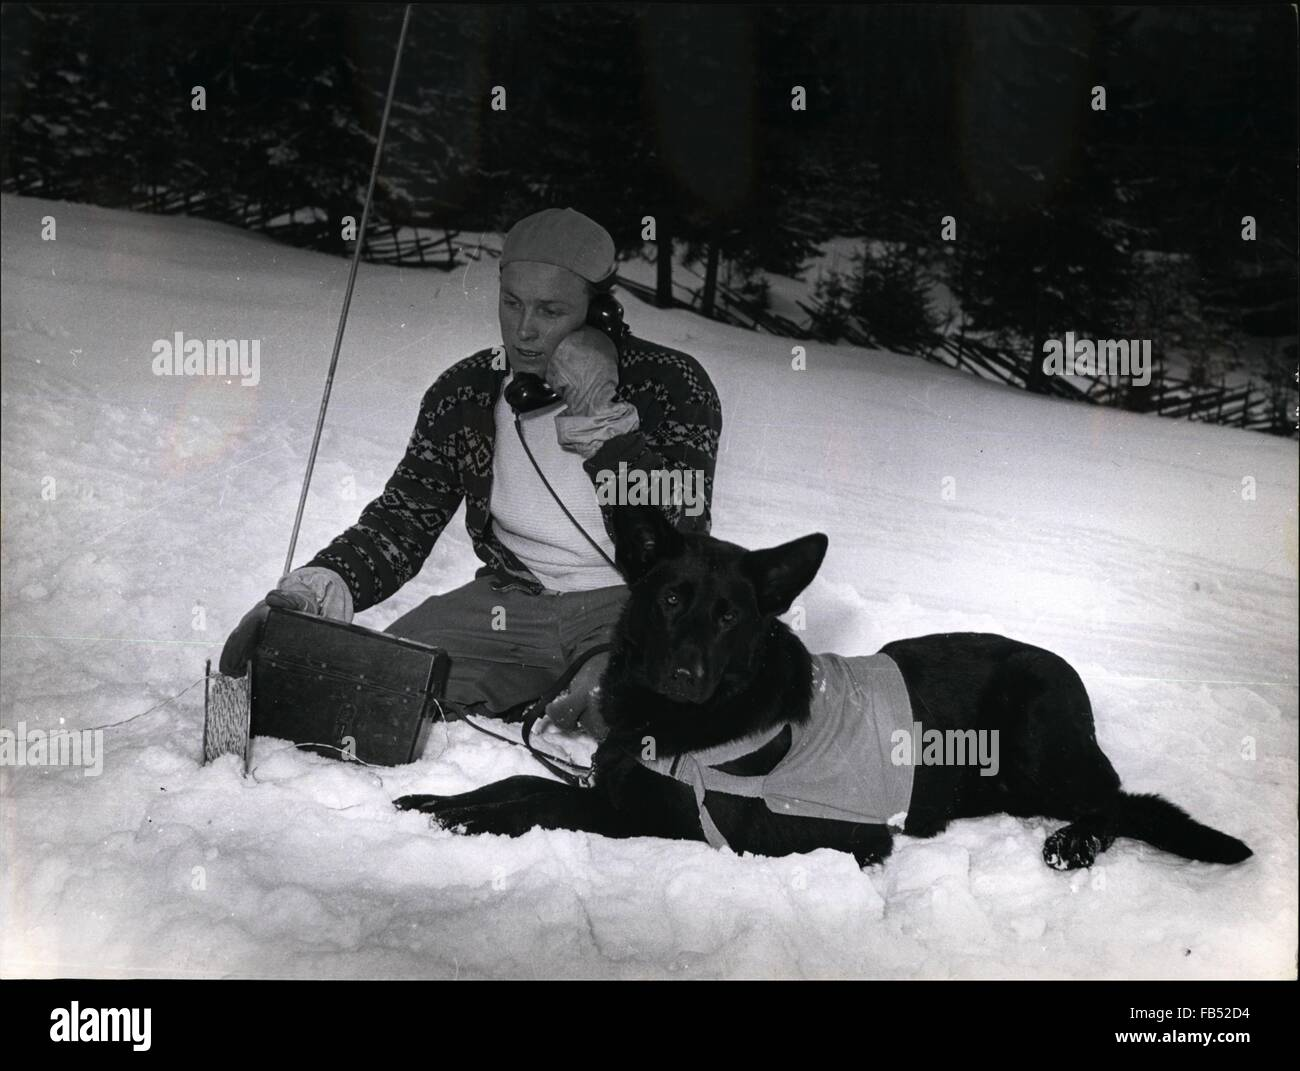 1972 - Snow Avalanche rescue Every half minute the man on the phone asks for a sign of life to be able to dig out - Stock Image